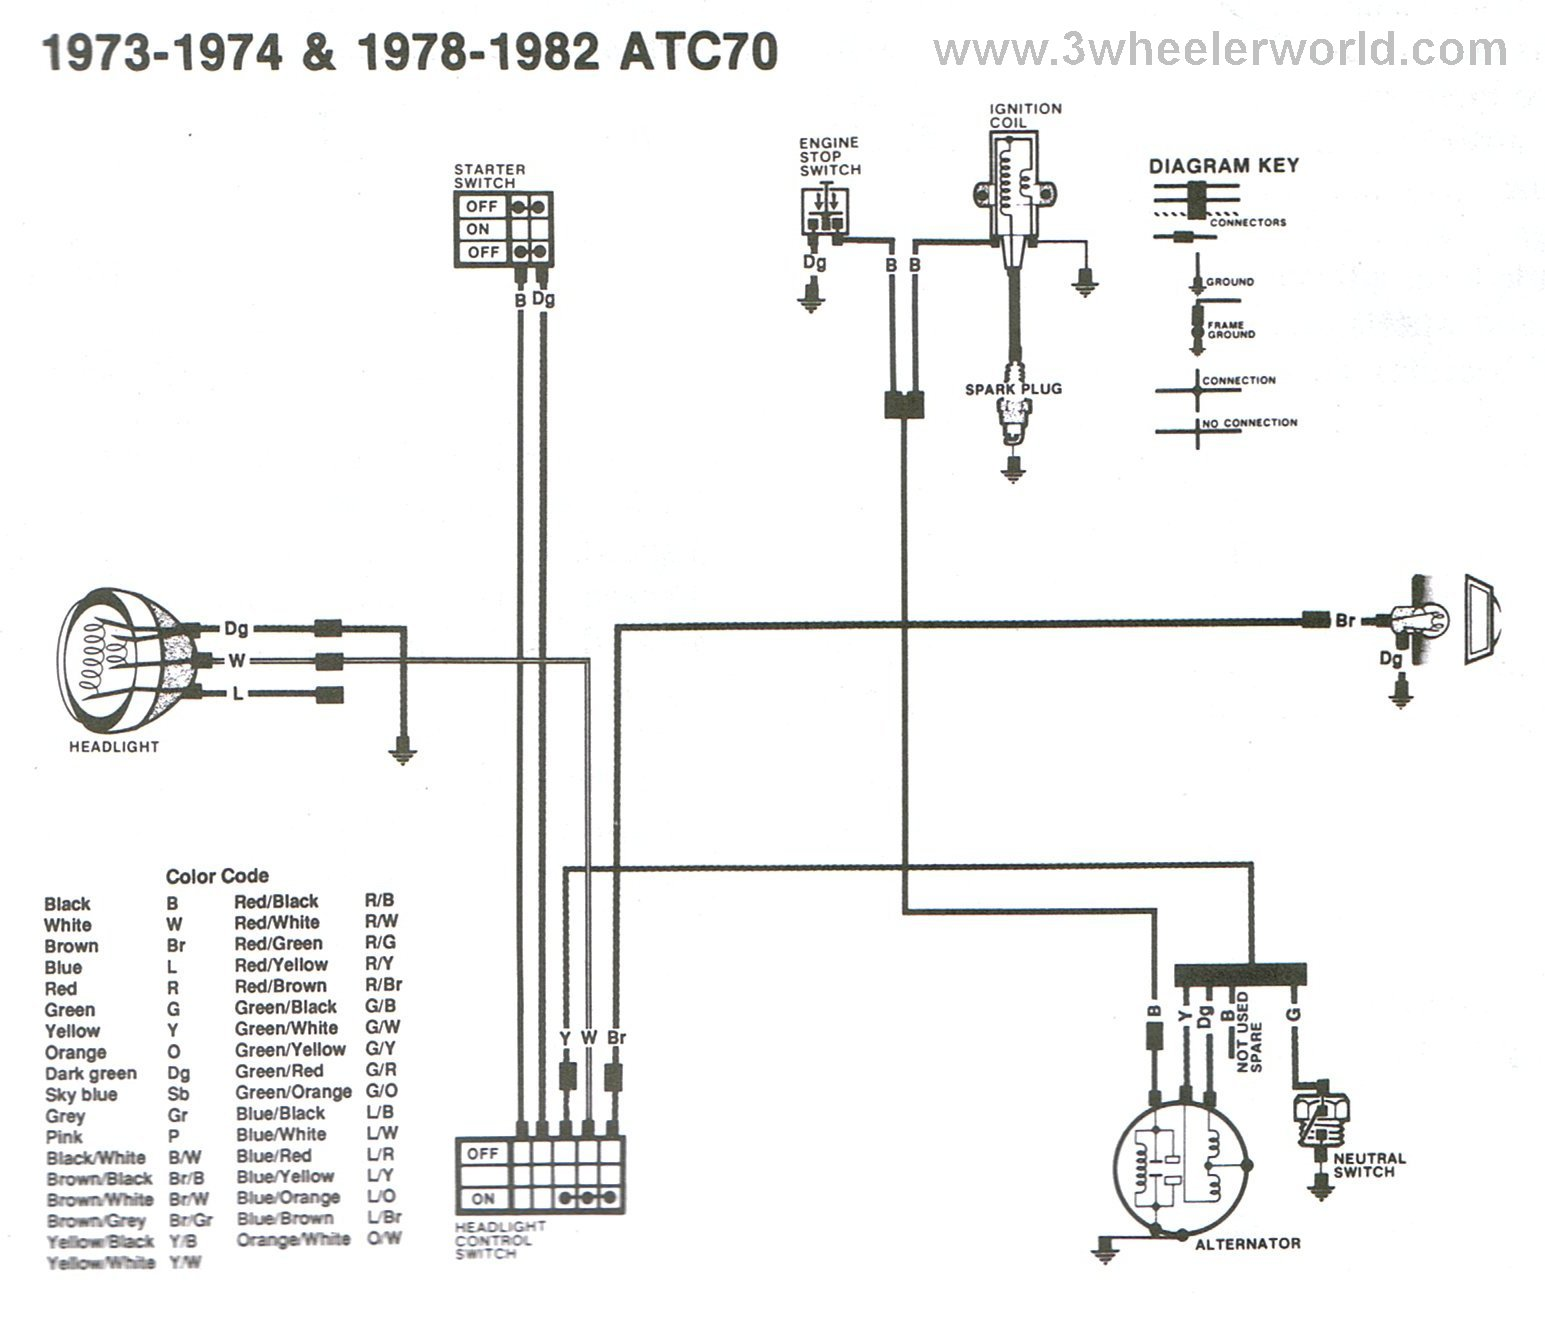 ATC70x73Thru82 3 wheeler world tech help honda wiring diagrams Basic Electrical Wiring Diagrams at mifinder.co